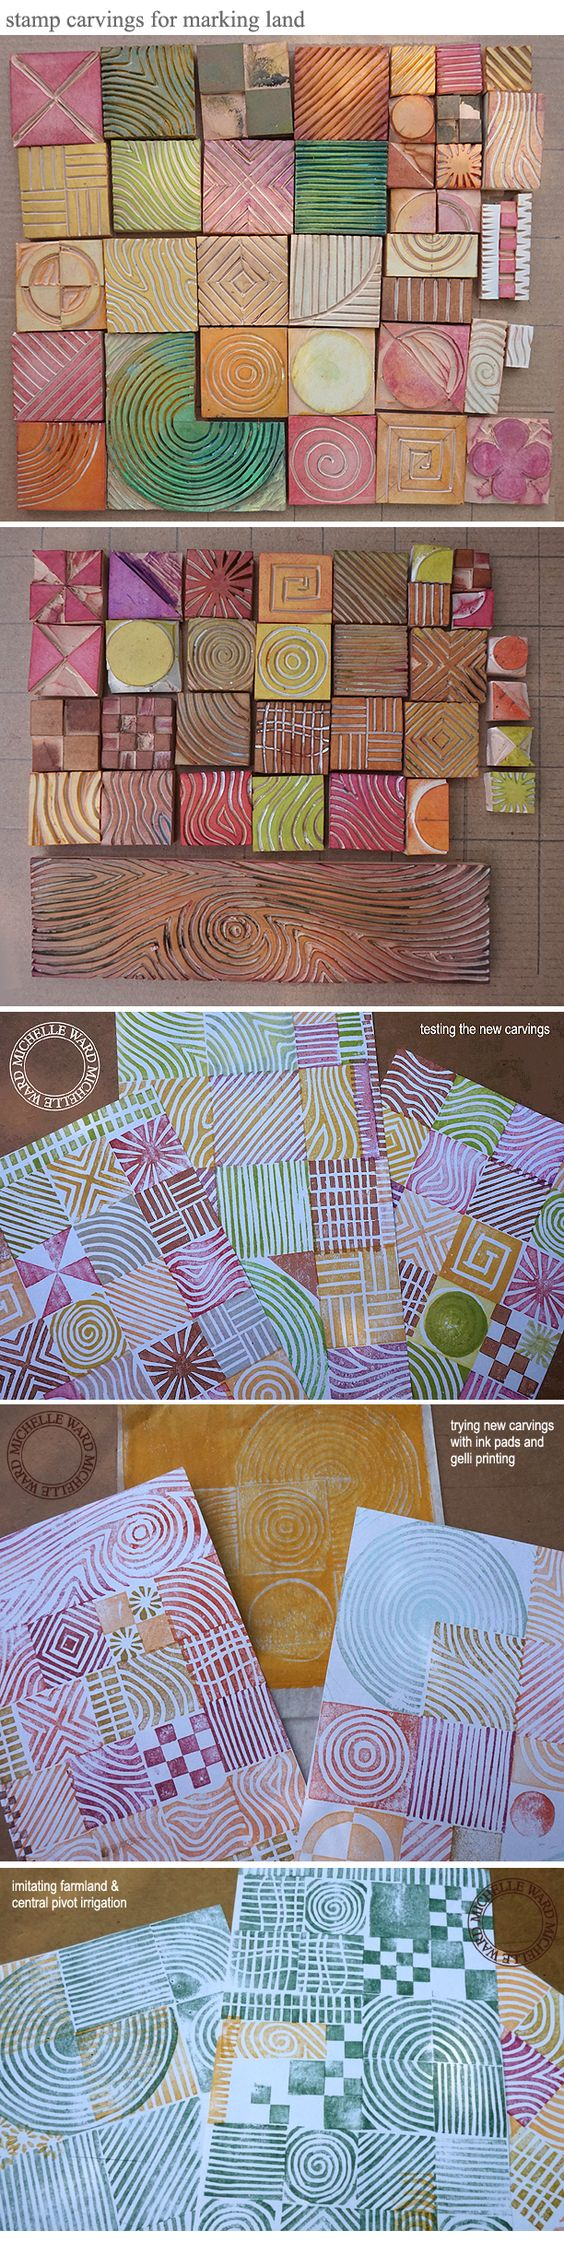 Stamp carvings for making maps, by Michelle Ward #craft